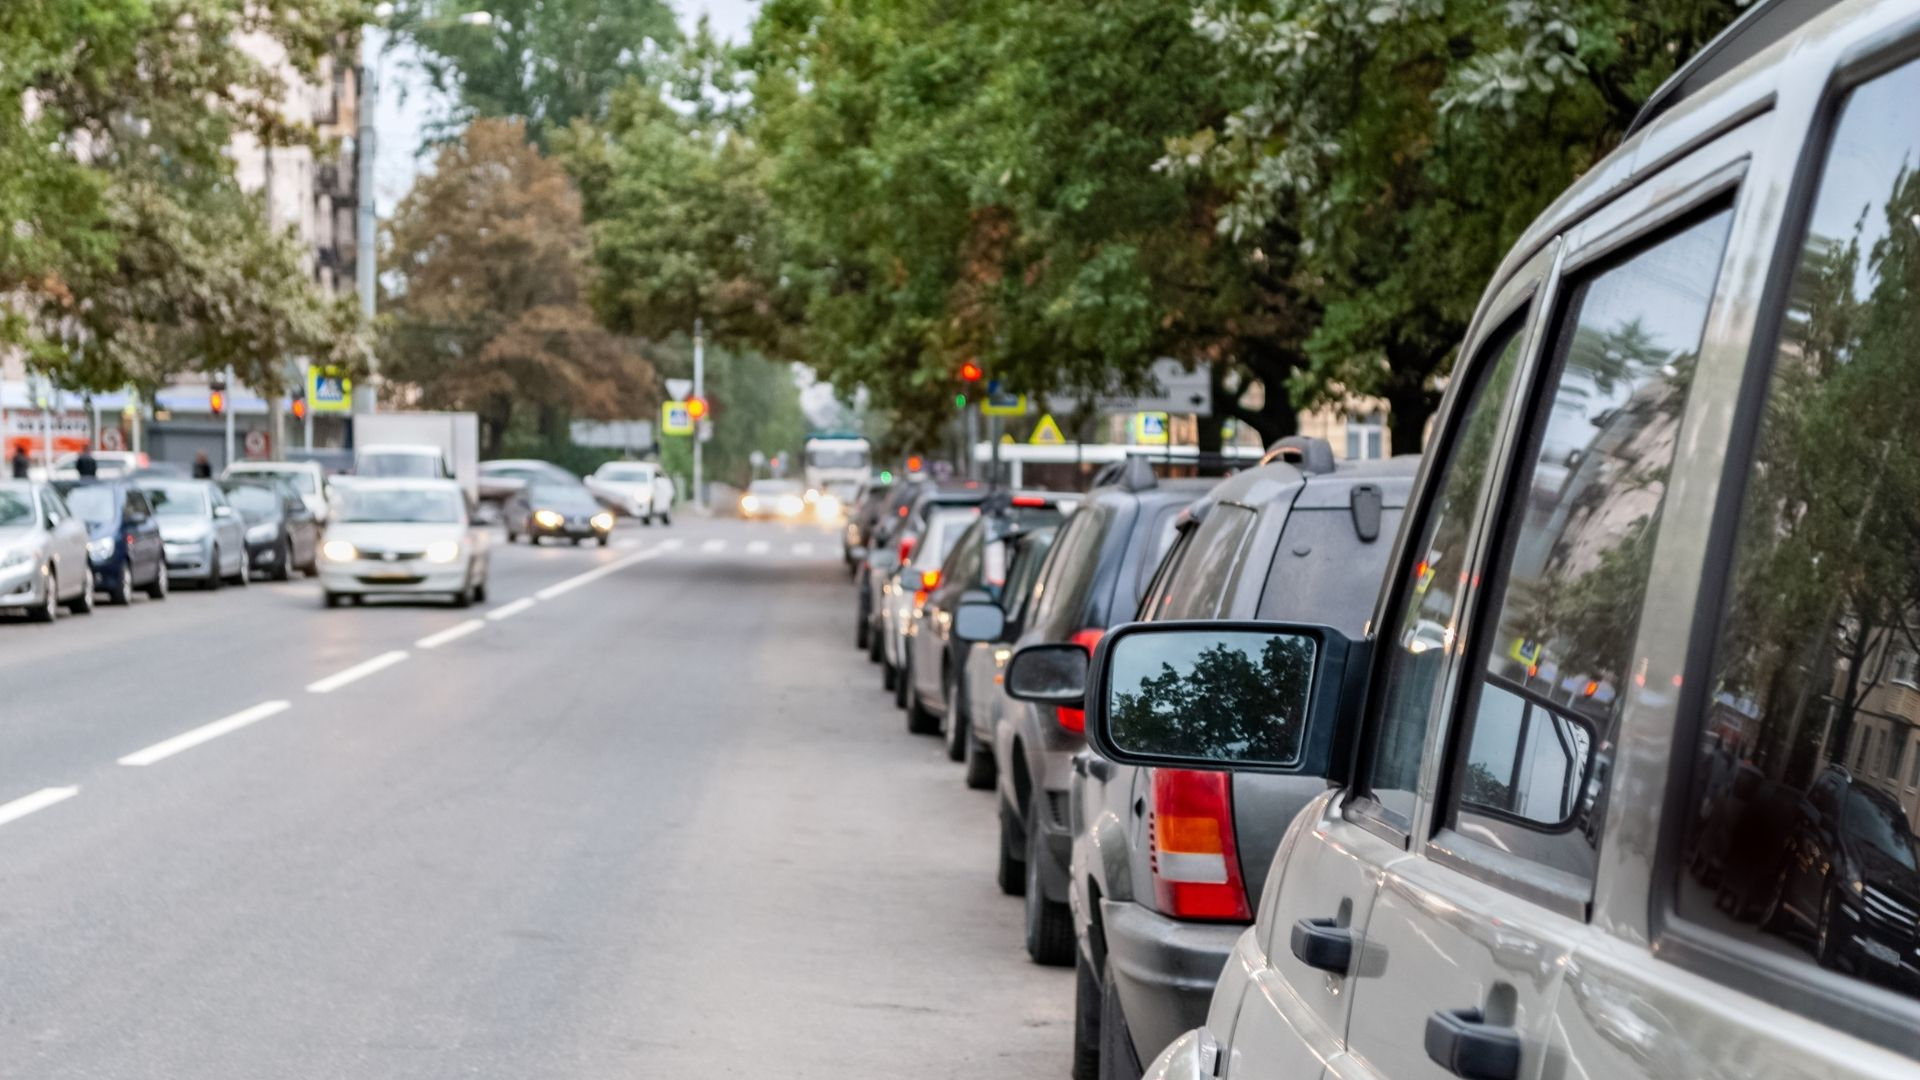 9 Ways Curb Data Can Help Enhance The Parking and Mobility Experience